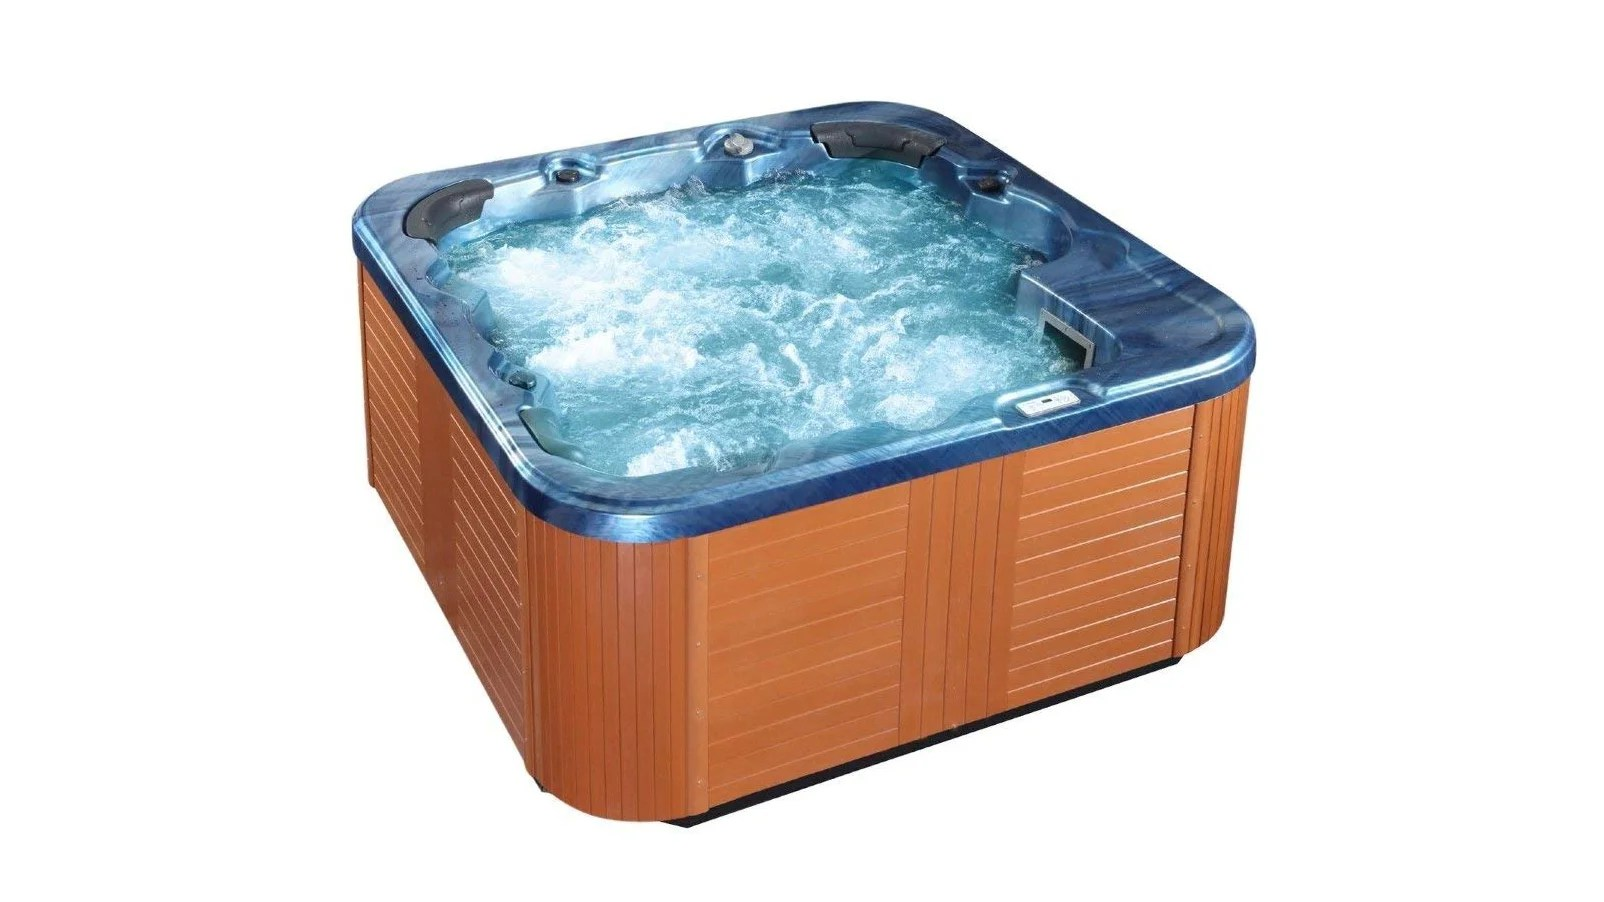 Outdoor Whirlpool Cheap Best Hot Tubs 2019 What To Know Before You Take The Plunge